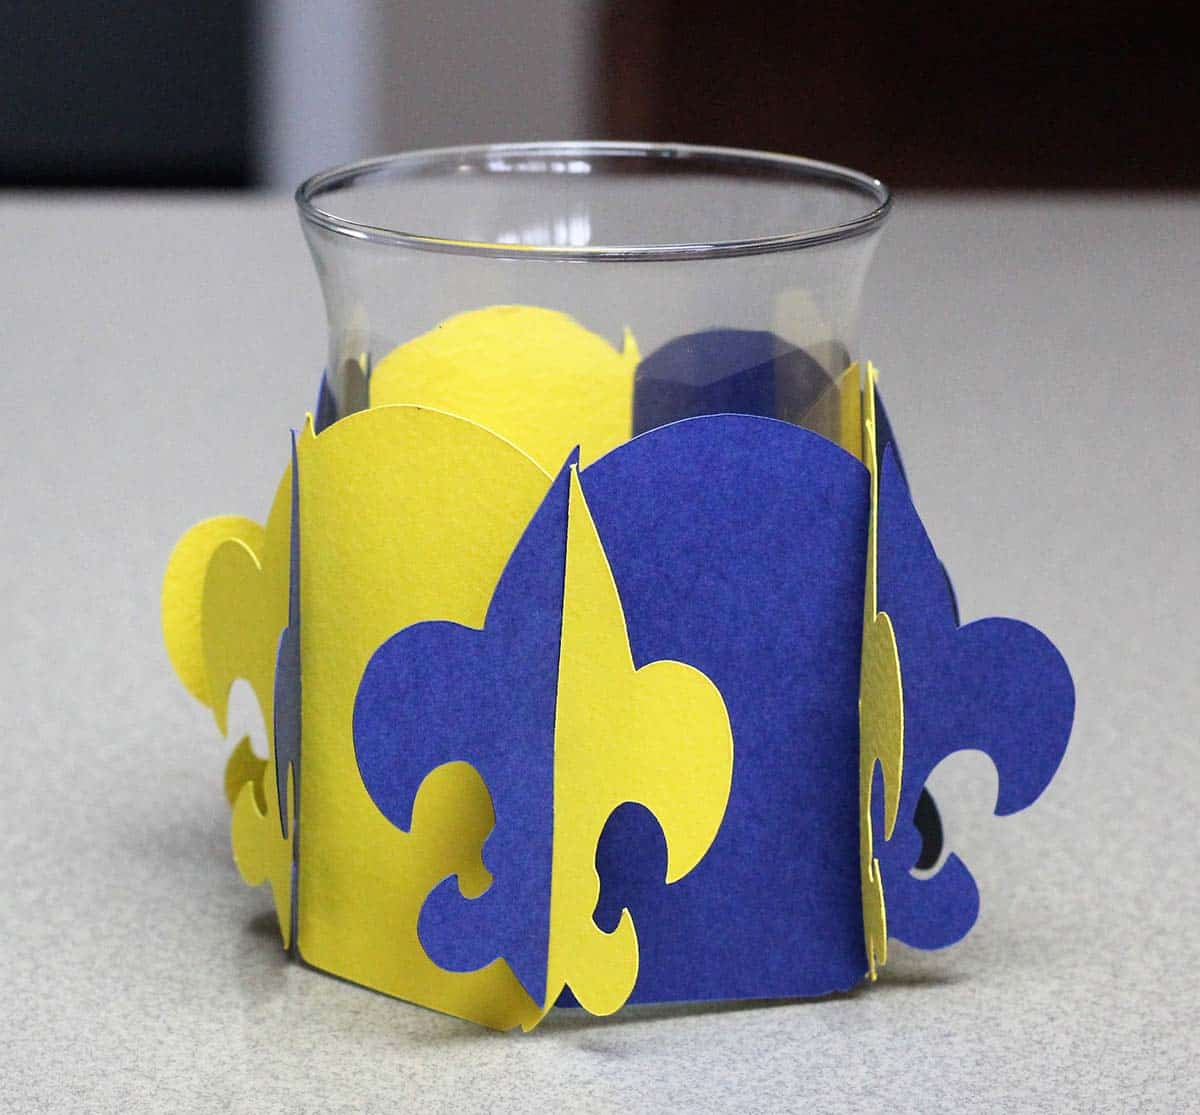 Cub Scout candleholder wrapper made with Cricut